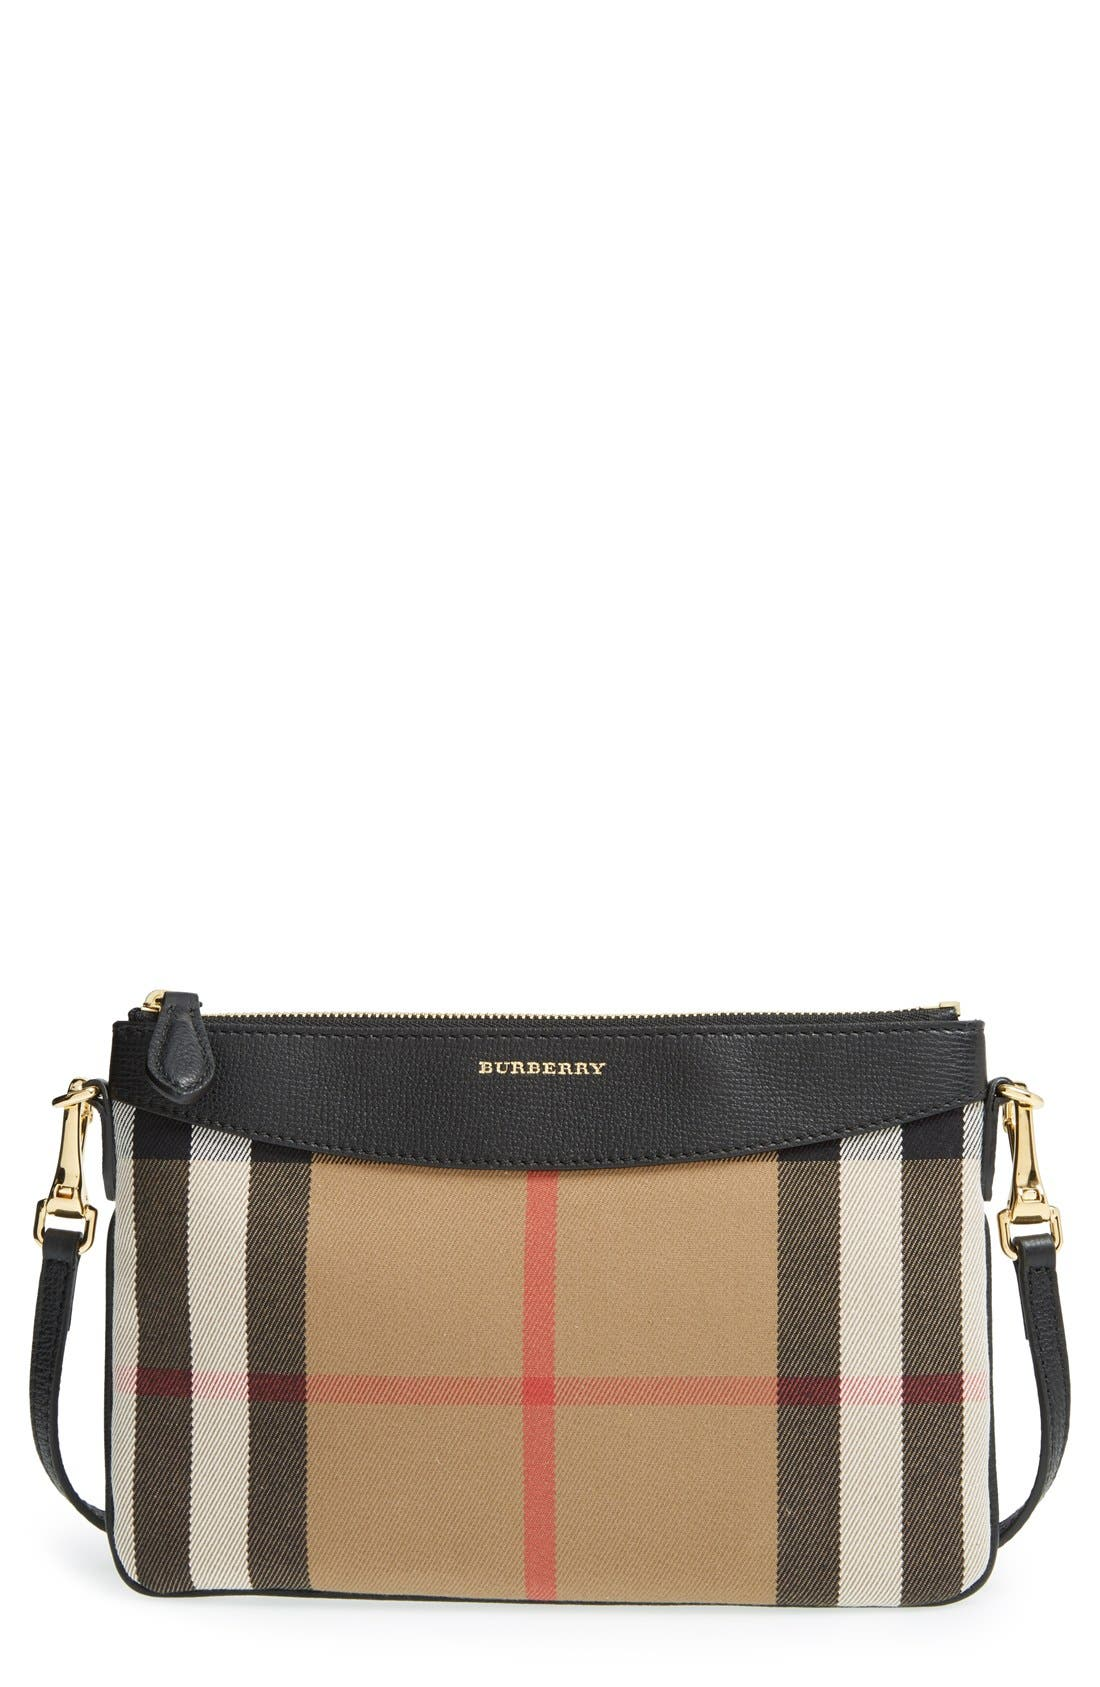 burberry bag speedy